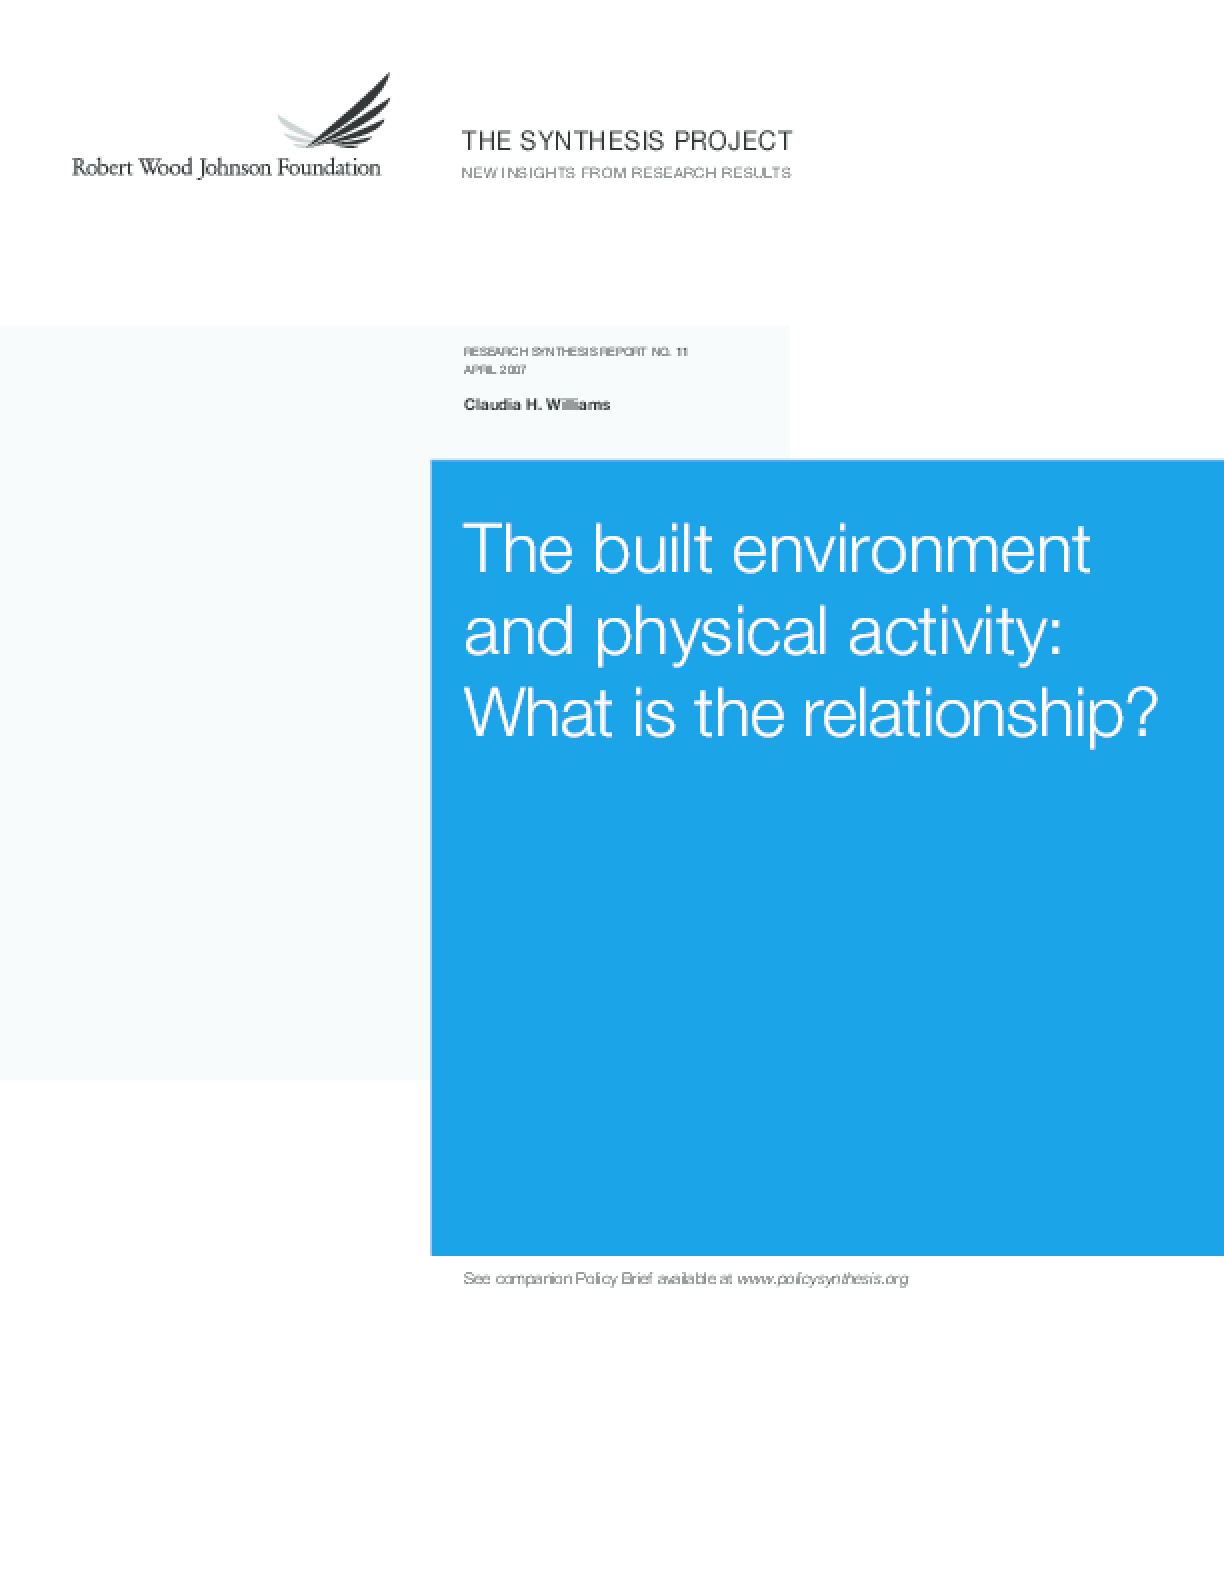 The Built Environment and Physical Activity: What Is the Relationship?